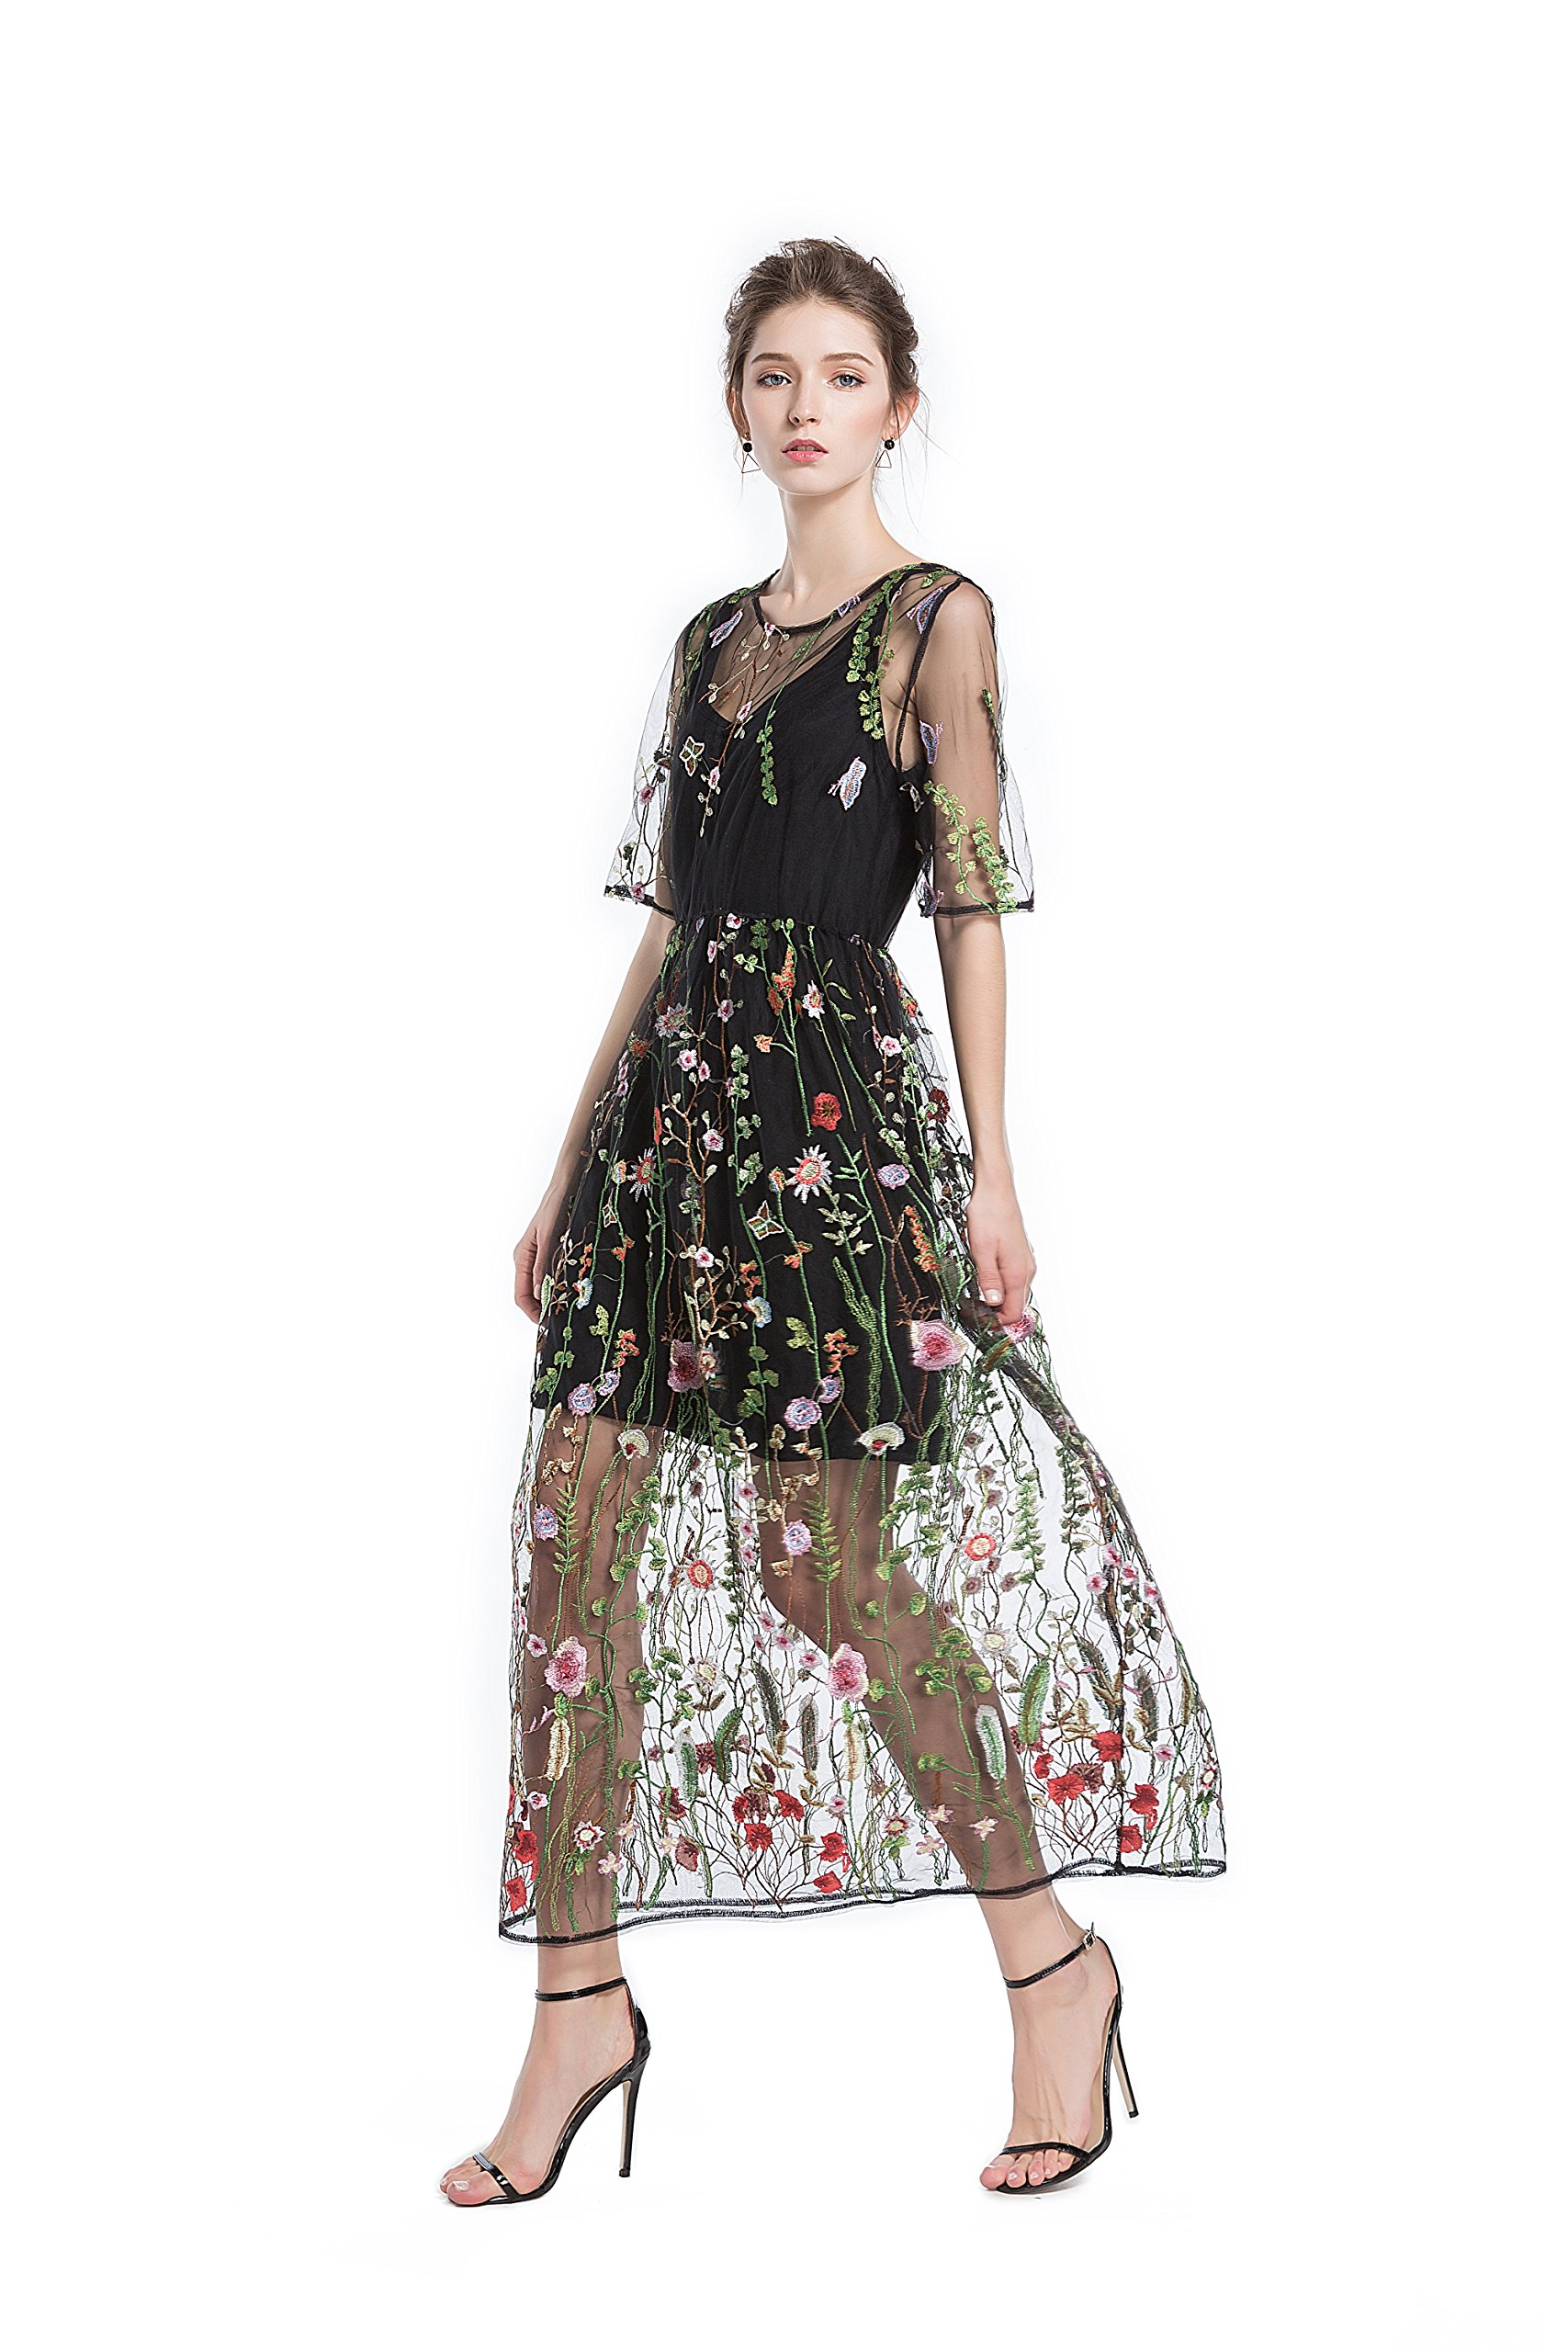 BaronHong Women's Floral Embroidered Tulle Prom Maxi Dress with Cami Dress 3/4 Sleeves